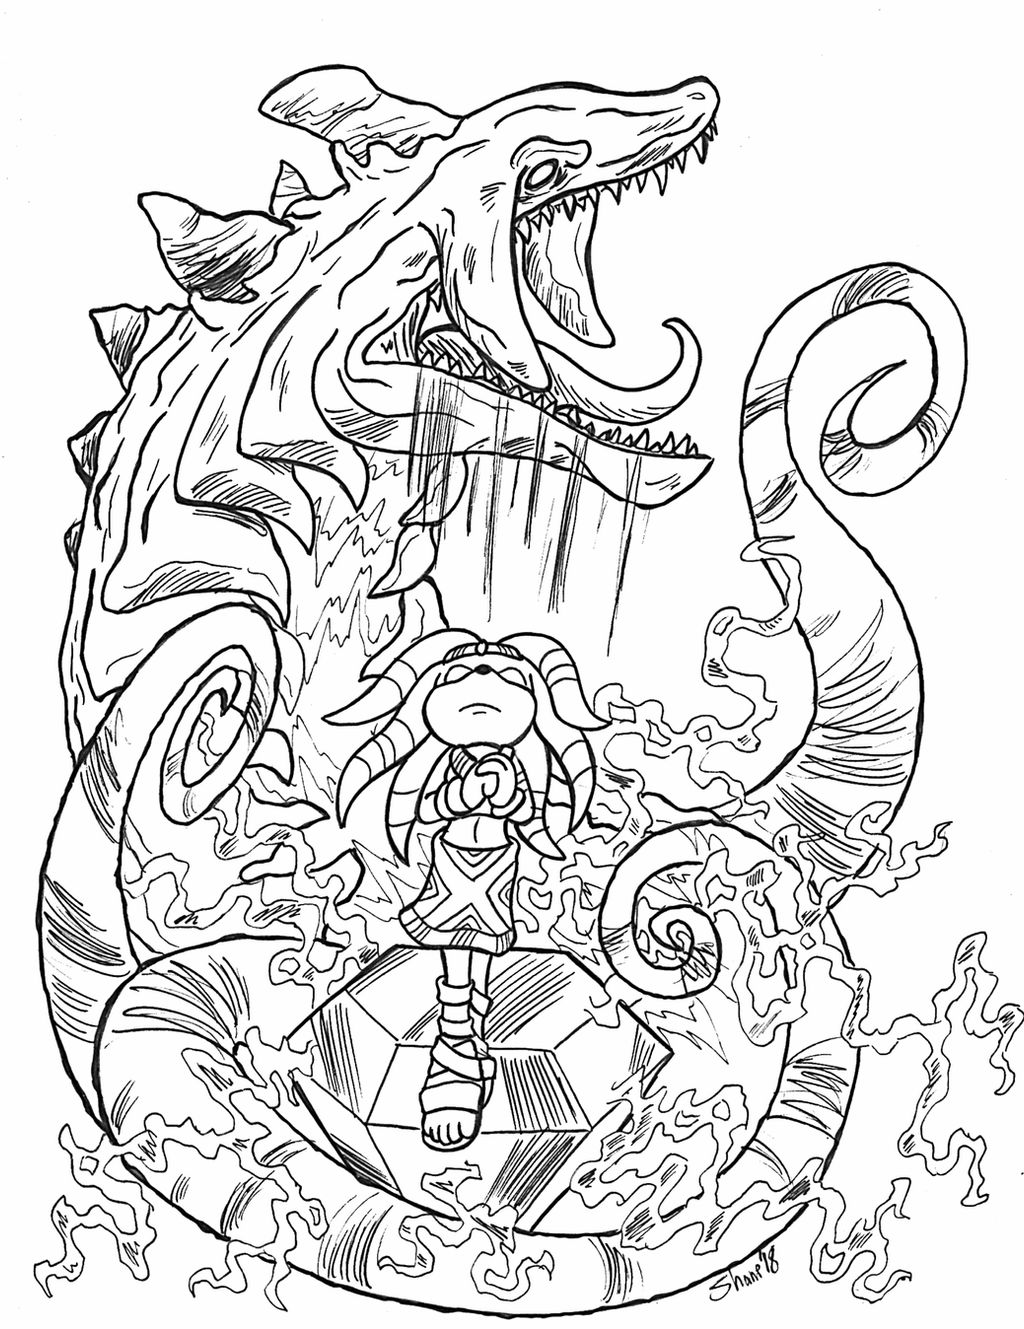 Sonictober - 01 - Chaos by Sea-Salt